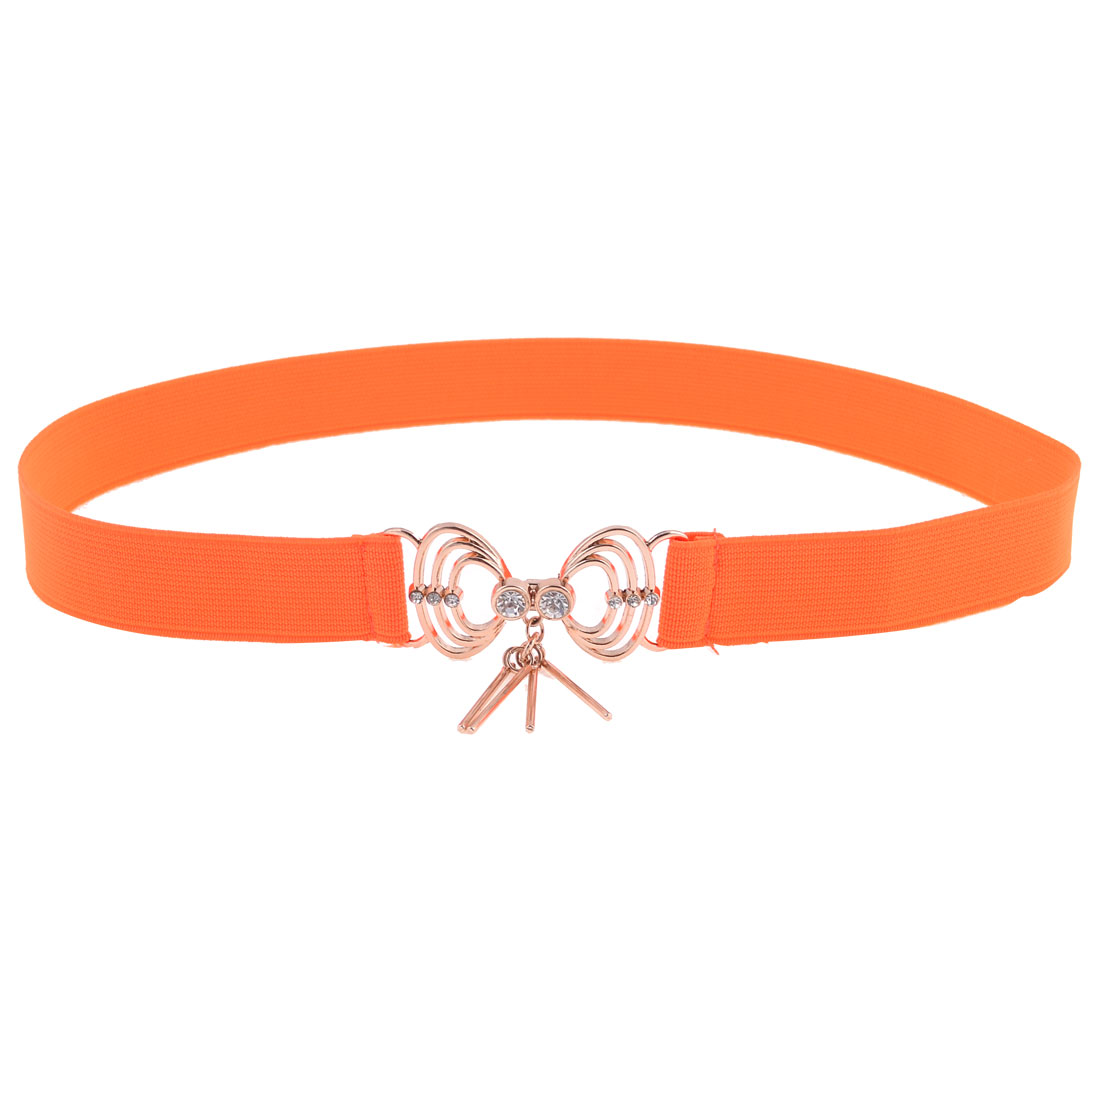 Lady Faux Cystal Detal Metal Interlock Buckle Orange Elastic Cinch Belt